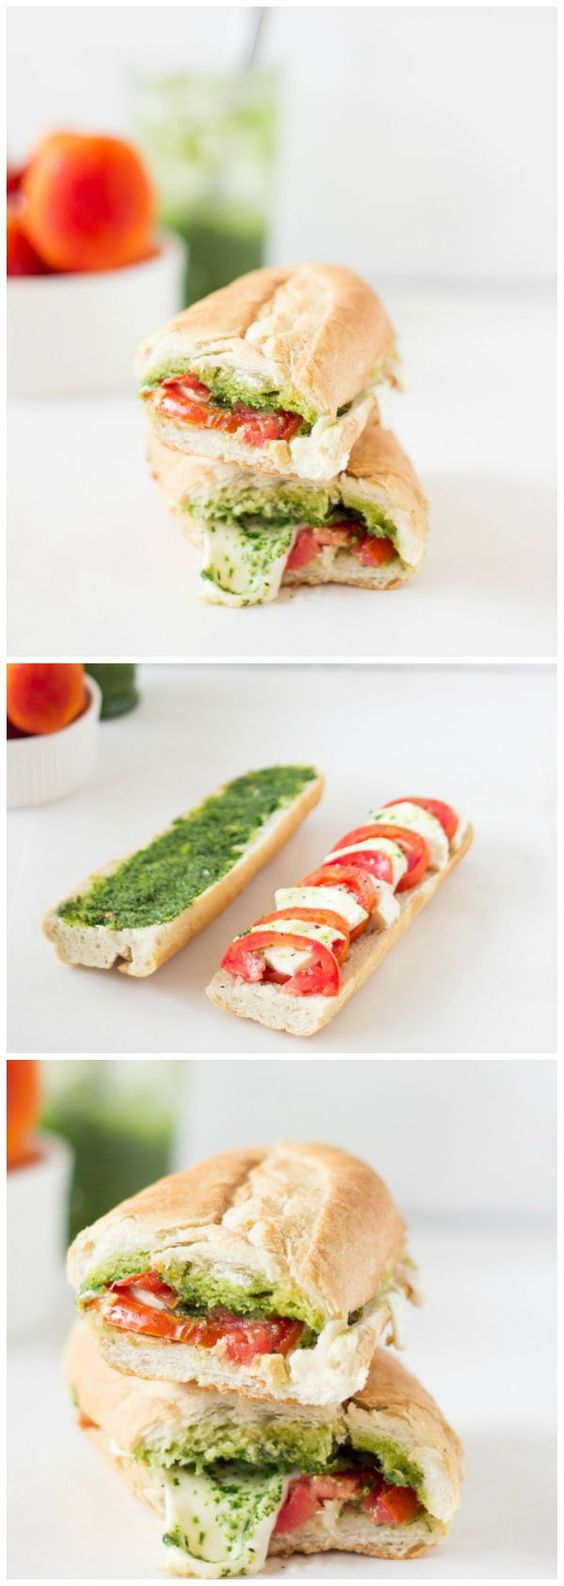 ★★★★☆ 6172 ratings       | Caprese Sandwich with Parsley Pesto #Caprese #Sandwich #Parsley #Pesto #Healthy